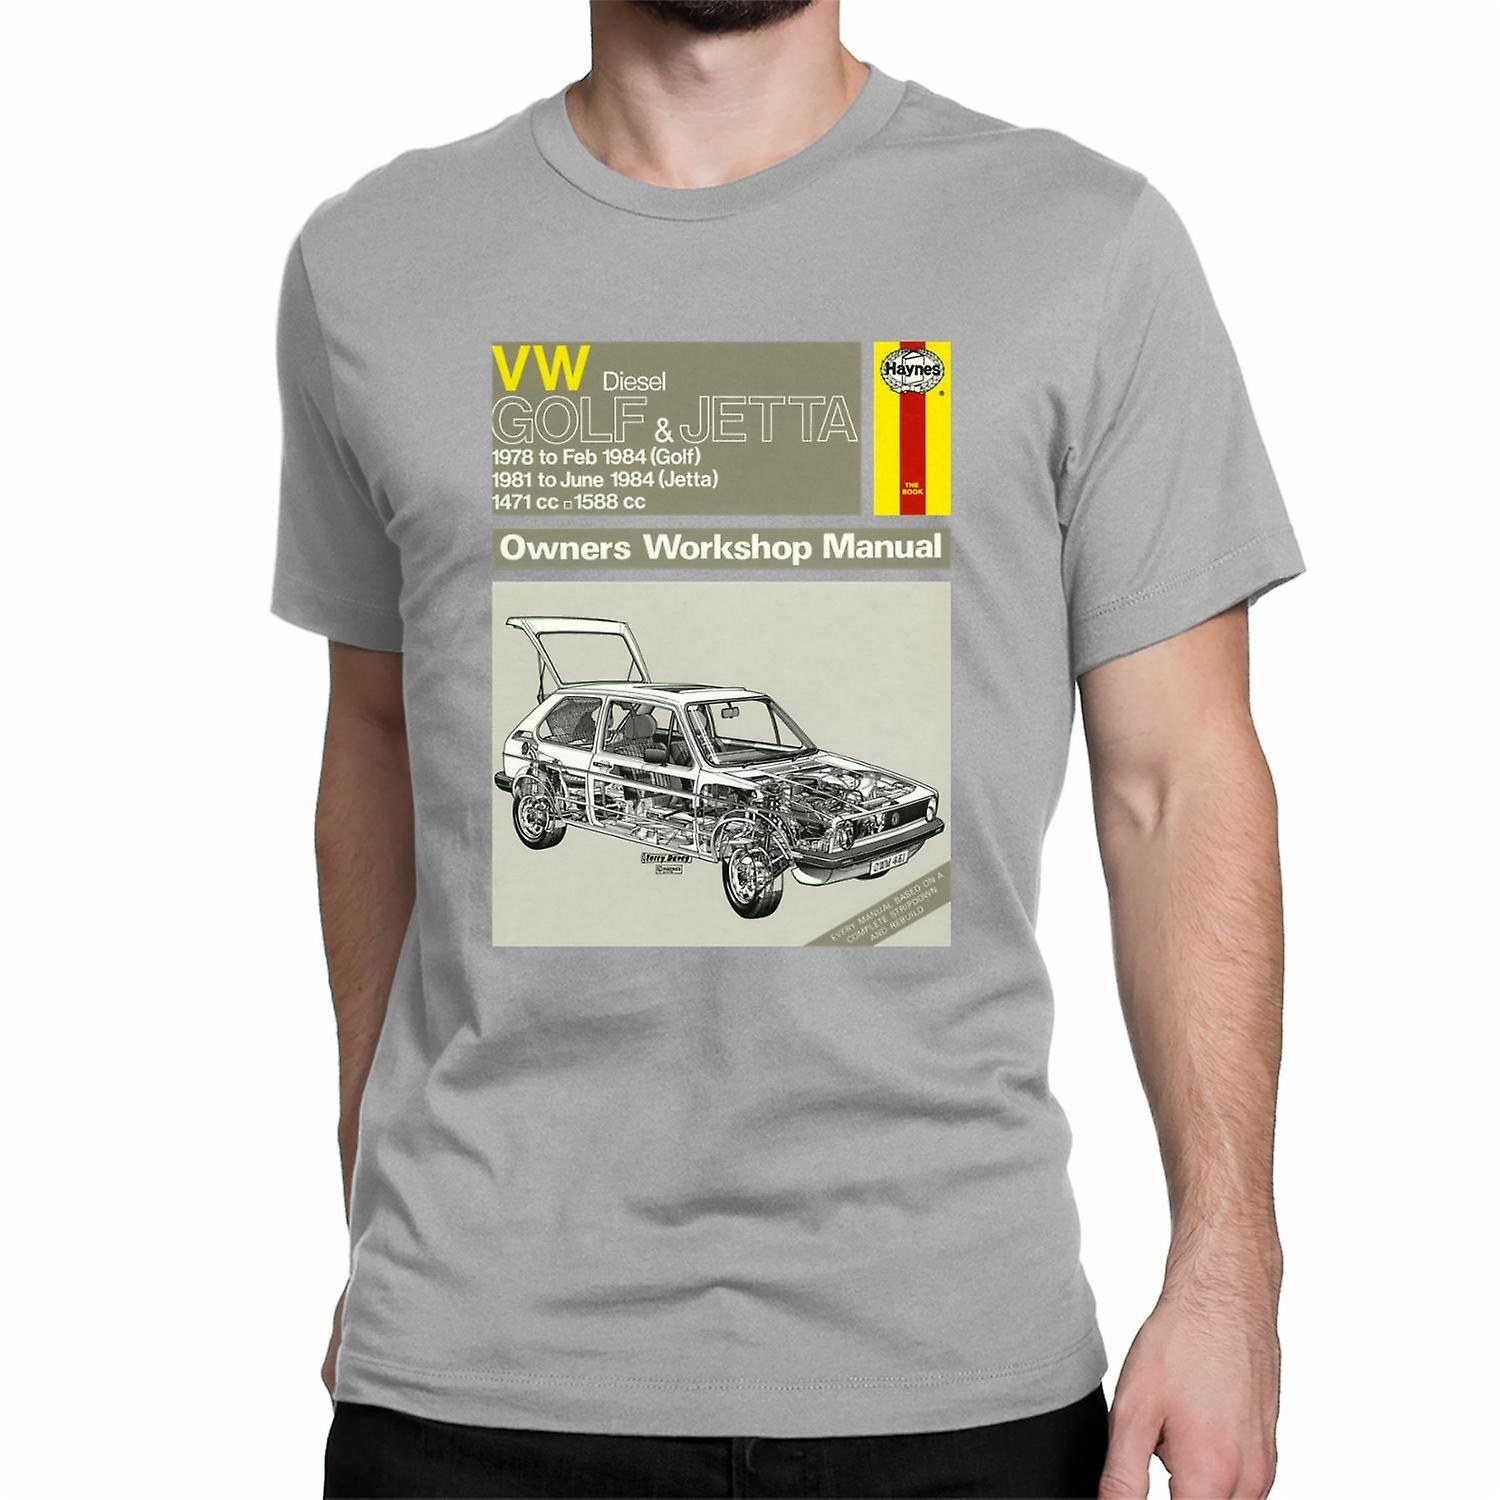 Official Haynes Manual Unisex T-shirt VW Diesel GOLF 78 to 84, JETTA 81 to 84 Owners Workshop Manual